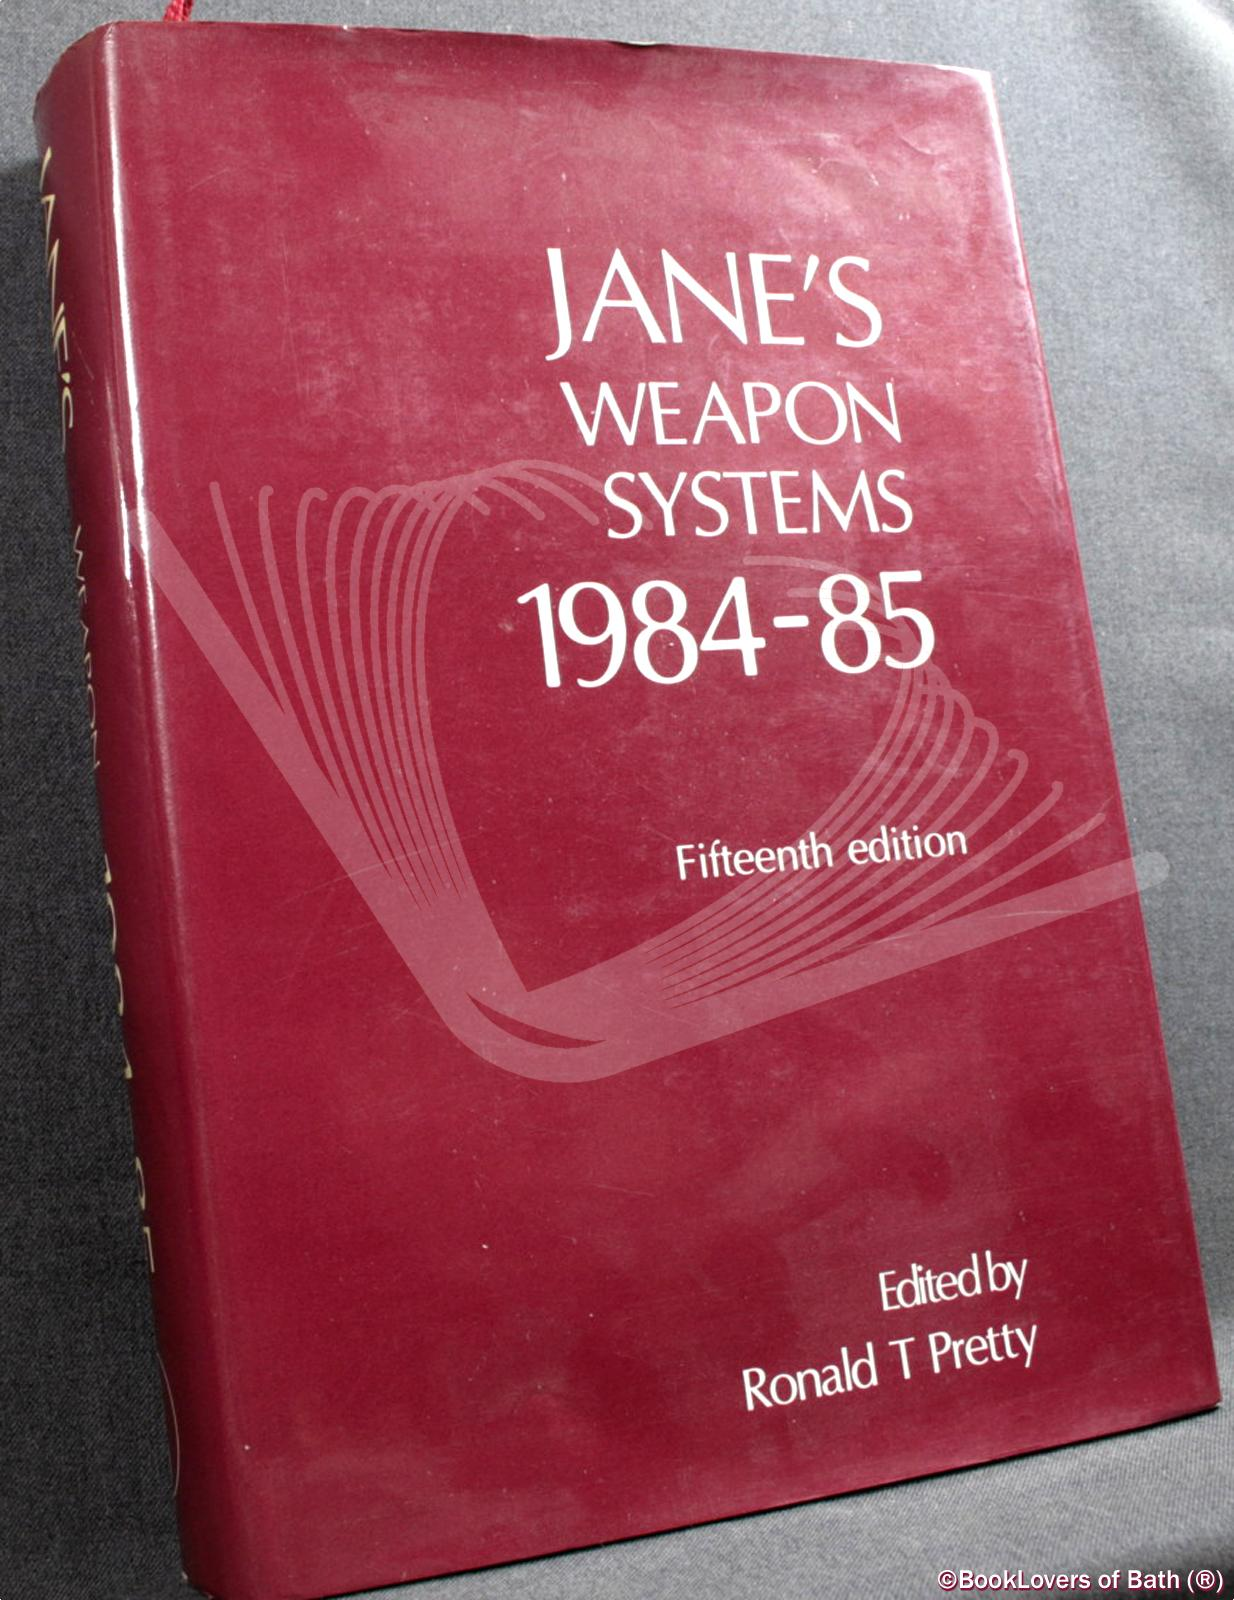 Jane's Weapon Systems: 1984-85 Fifteenth Edition - Ronald T. Pretty